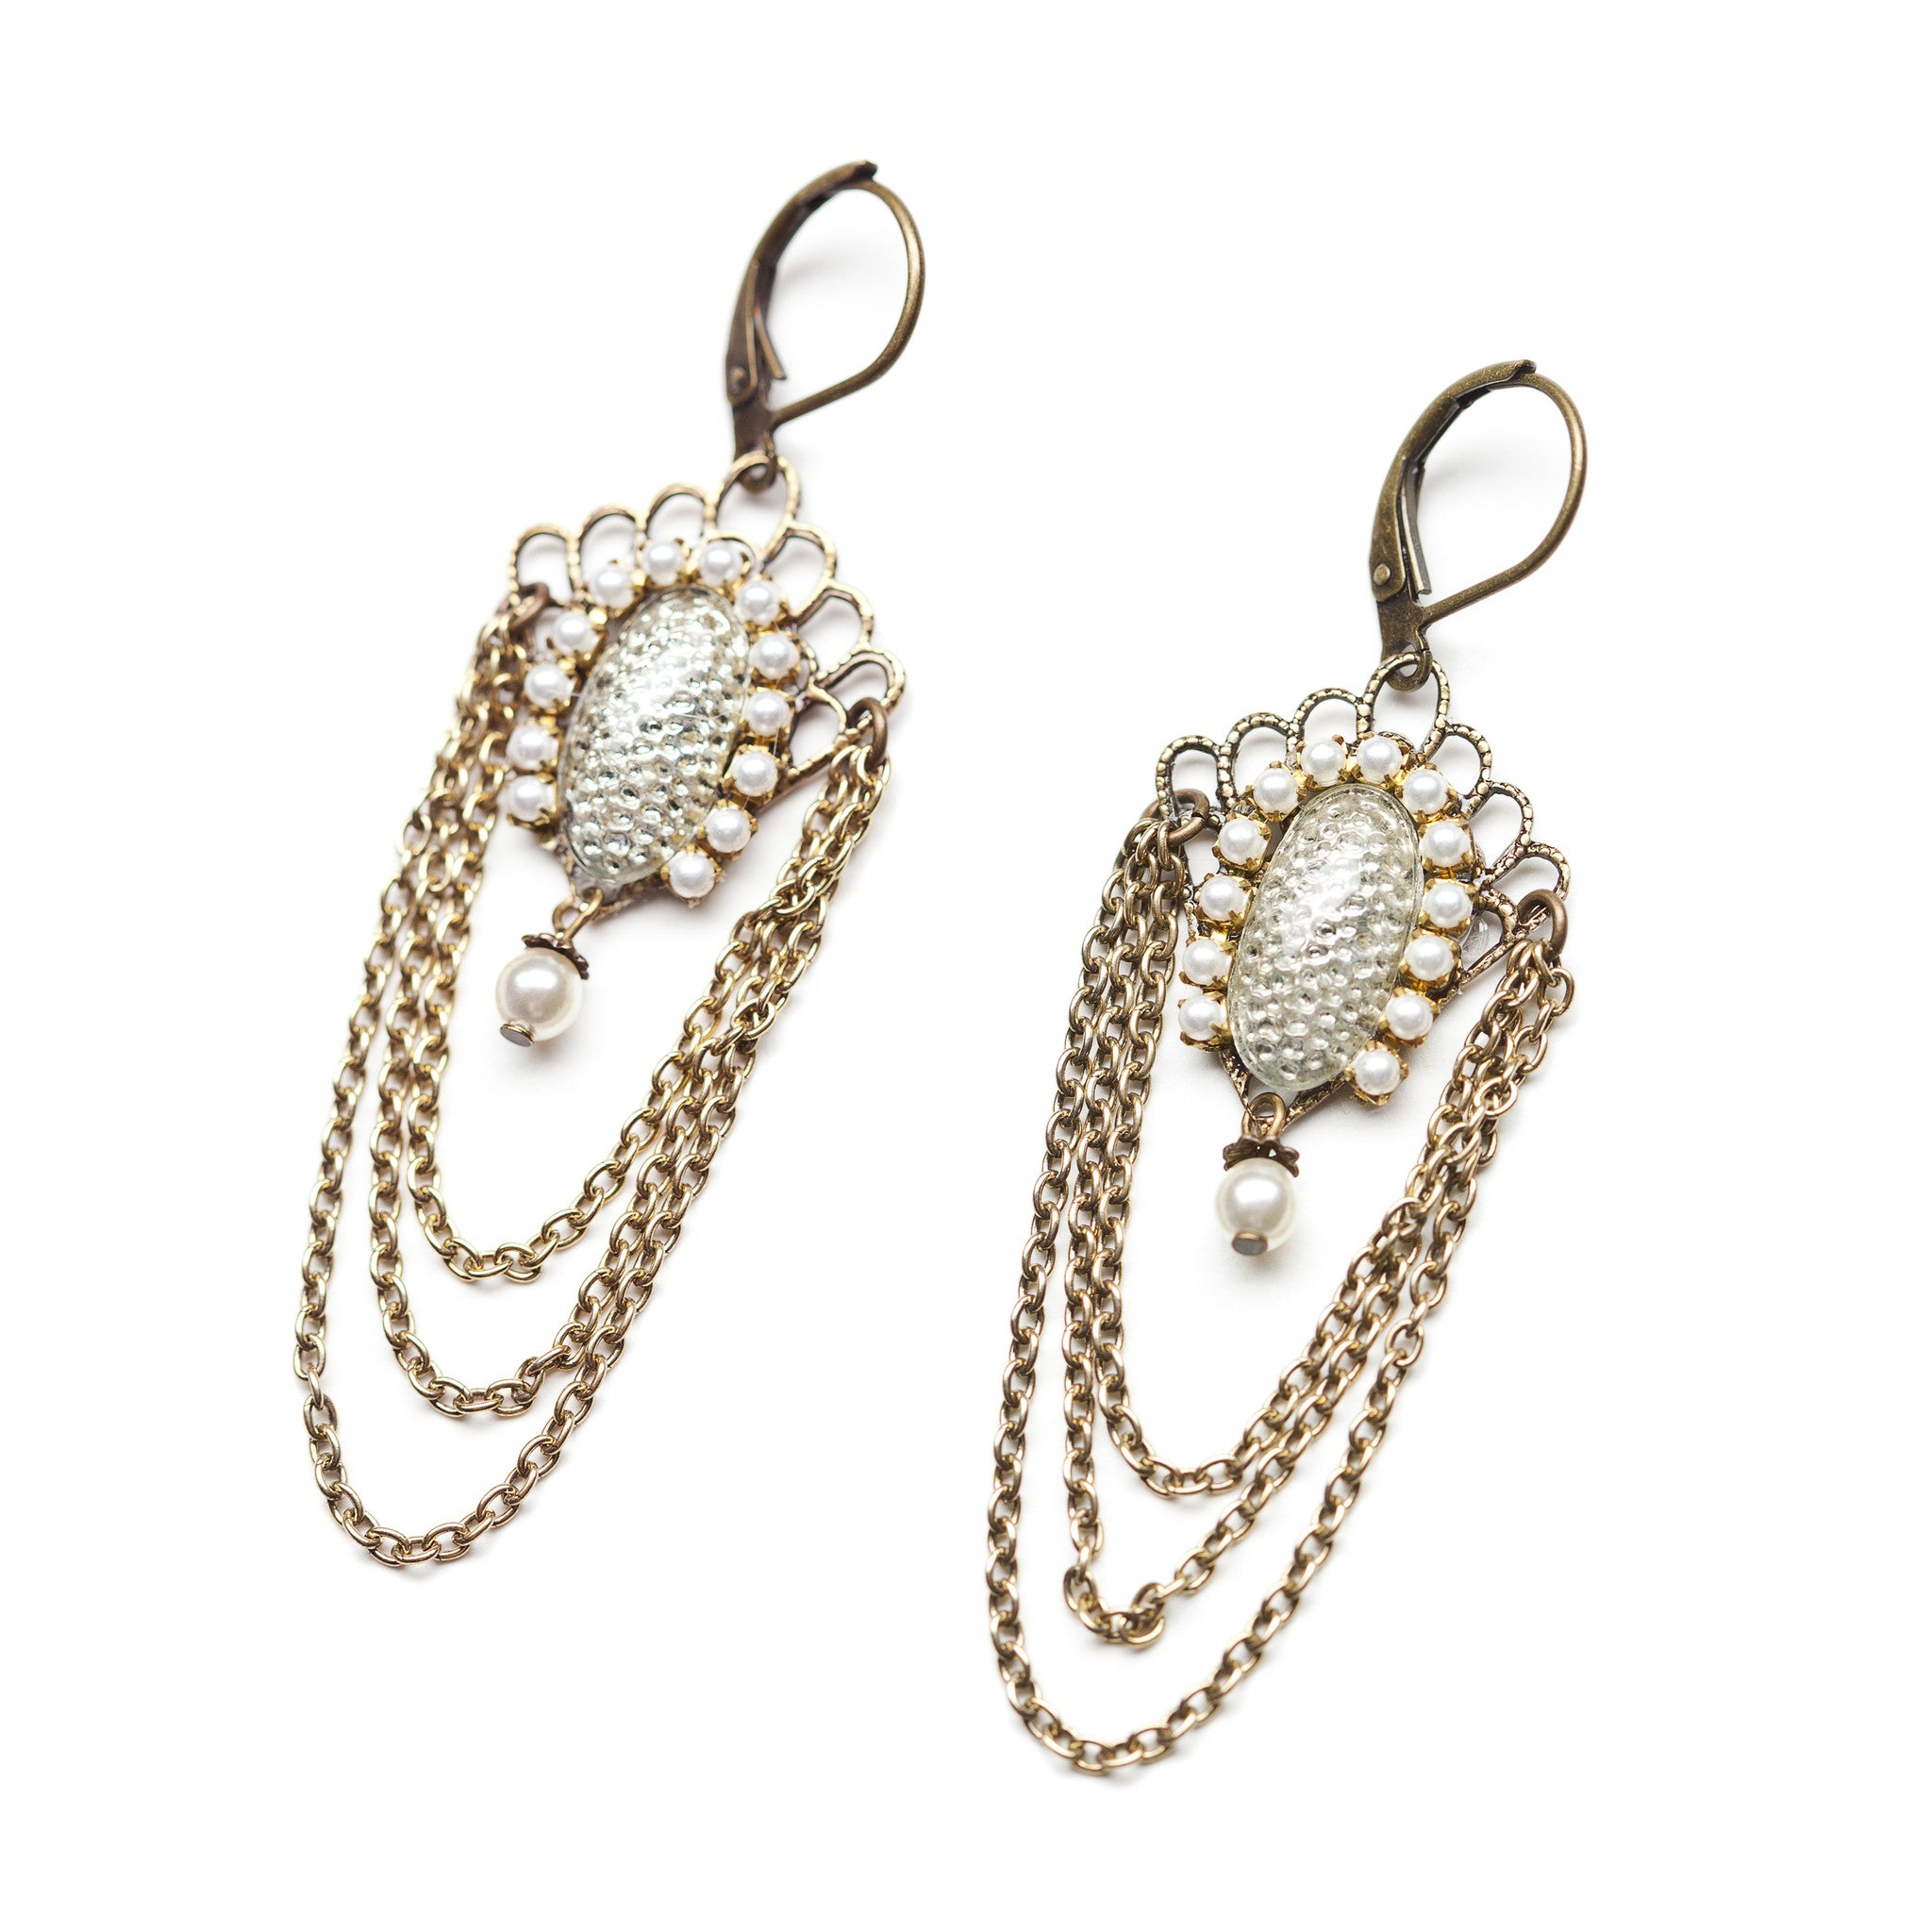 Vintage inspired chandelier earring with pearls and chains